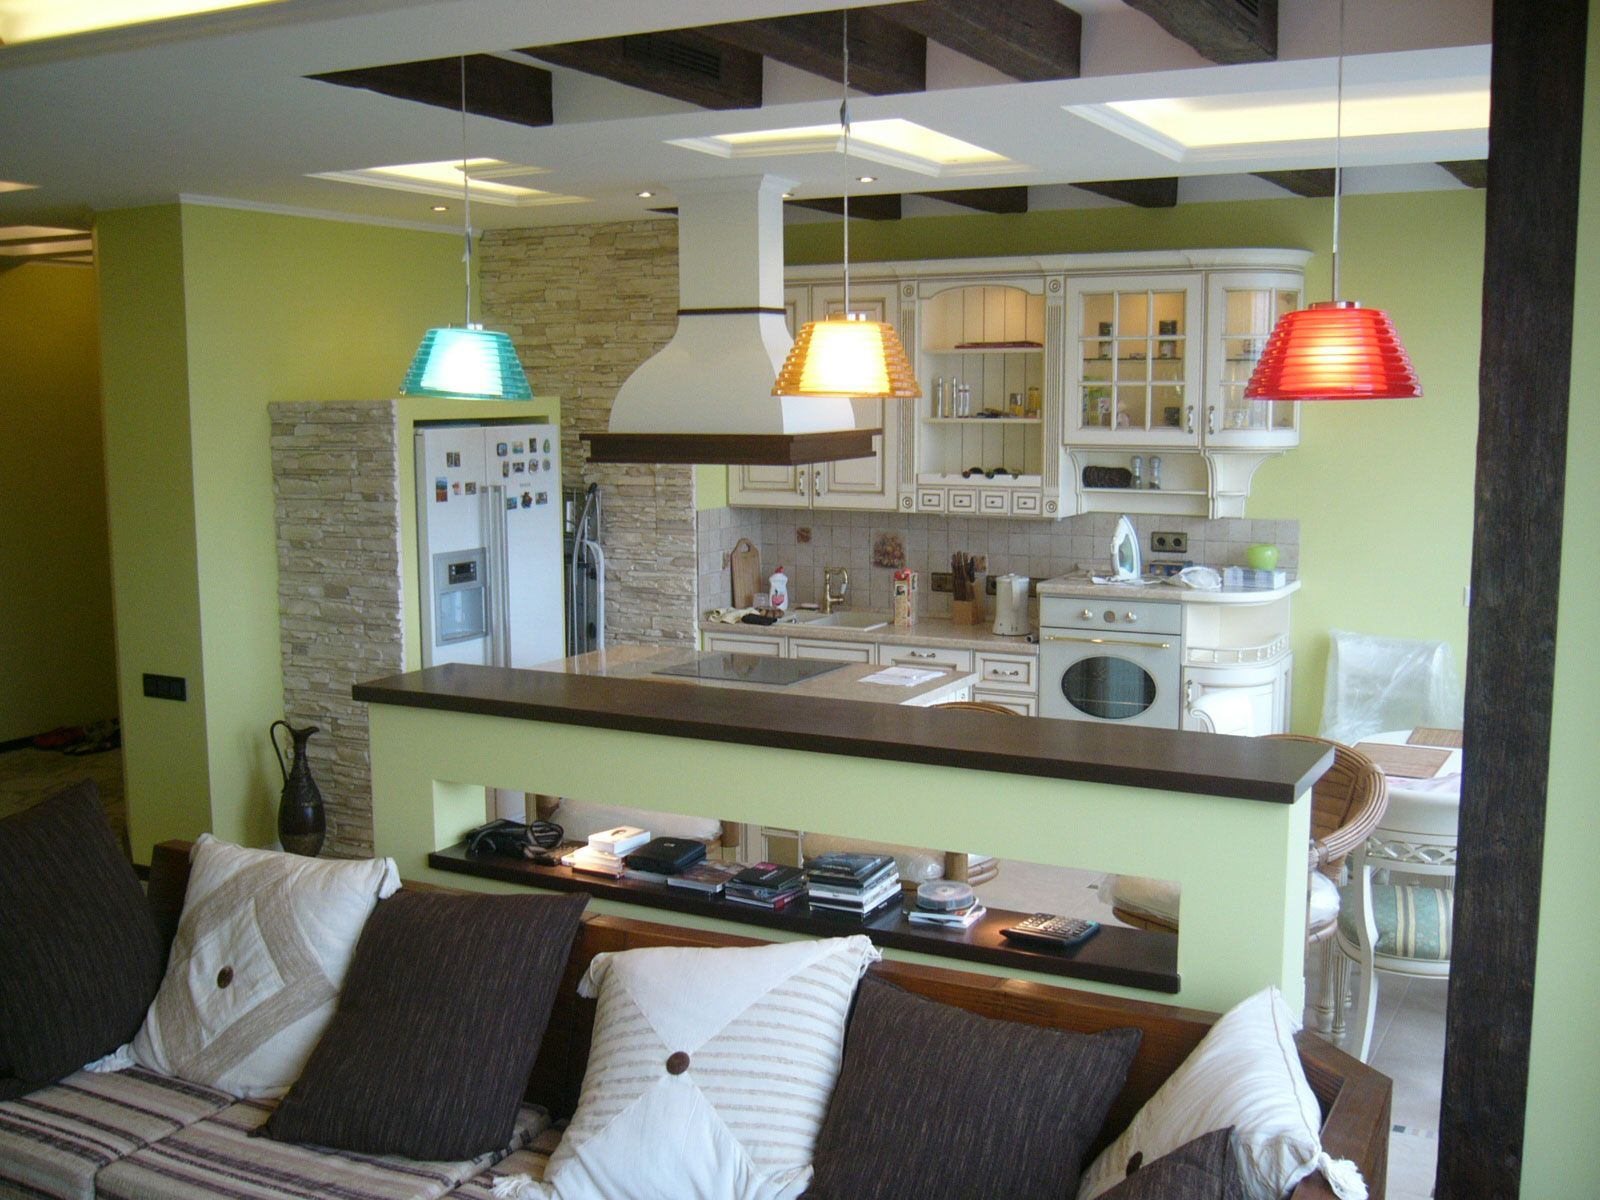 Lime wall color theme in the living room combined with kitchen zone and separated by the bar island